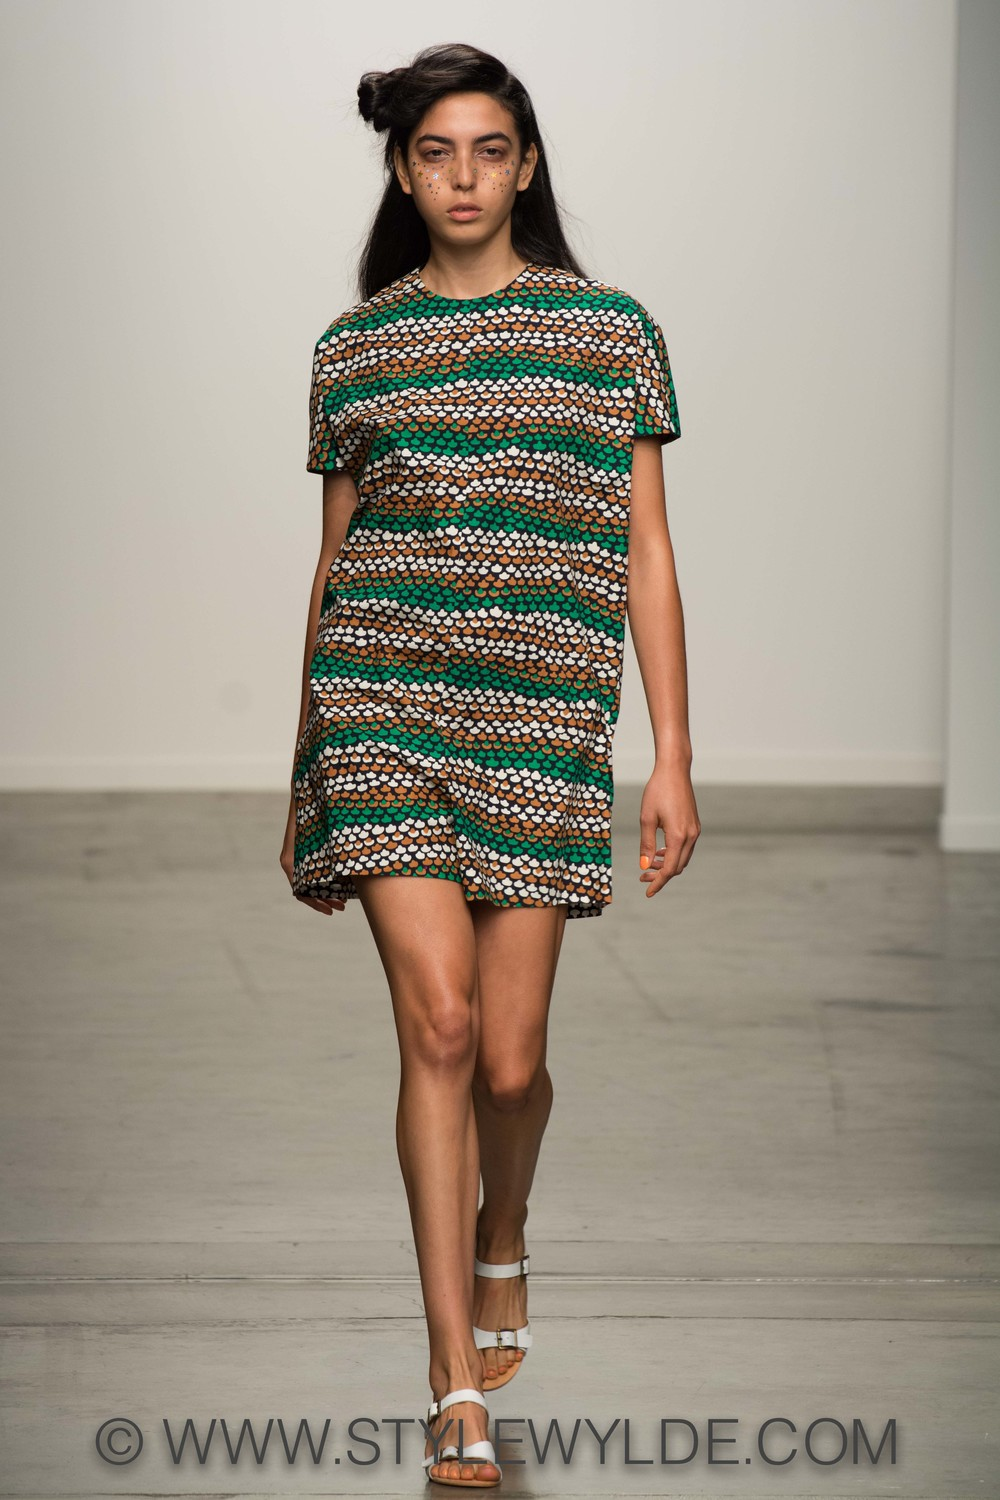 StyleWylde_adetacher_FOH_SS15_sw (11 of 37).jpg